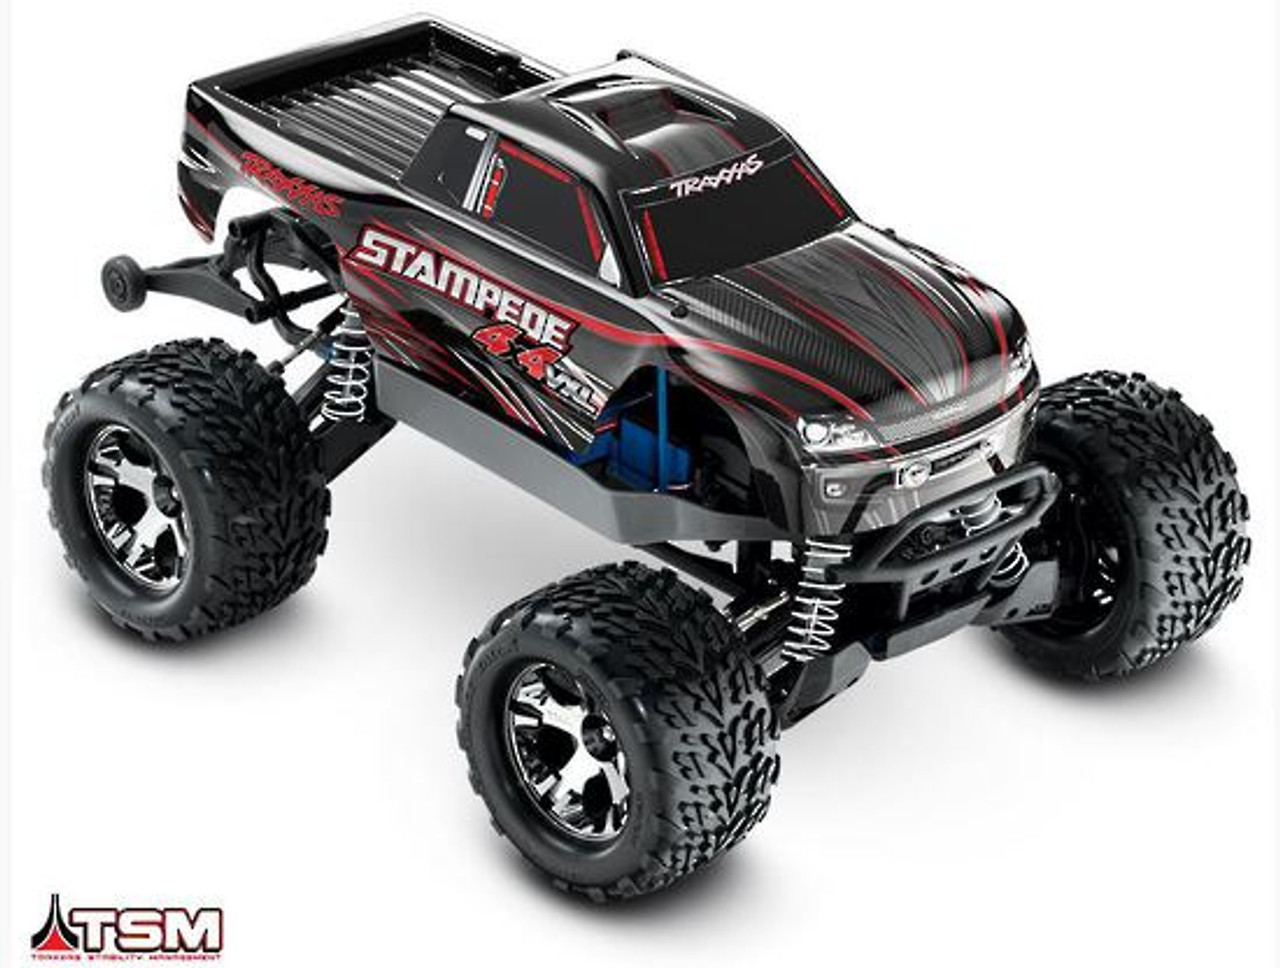 Traxxas 67086-4 Stampede VXL 1/10 4X4 RTR RC Monster Truck with TMS